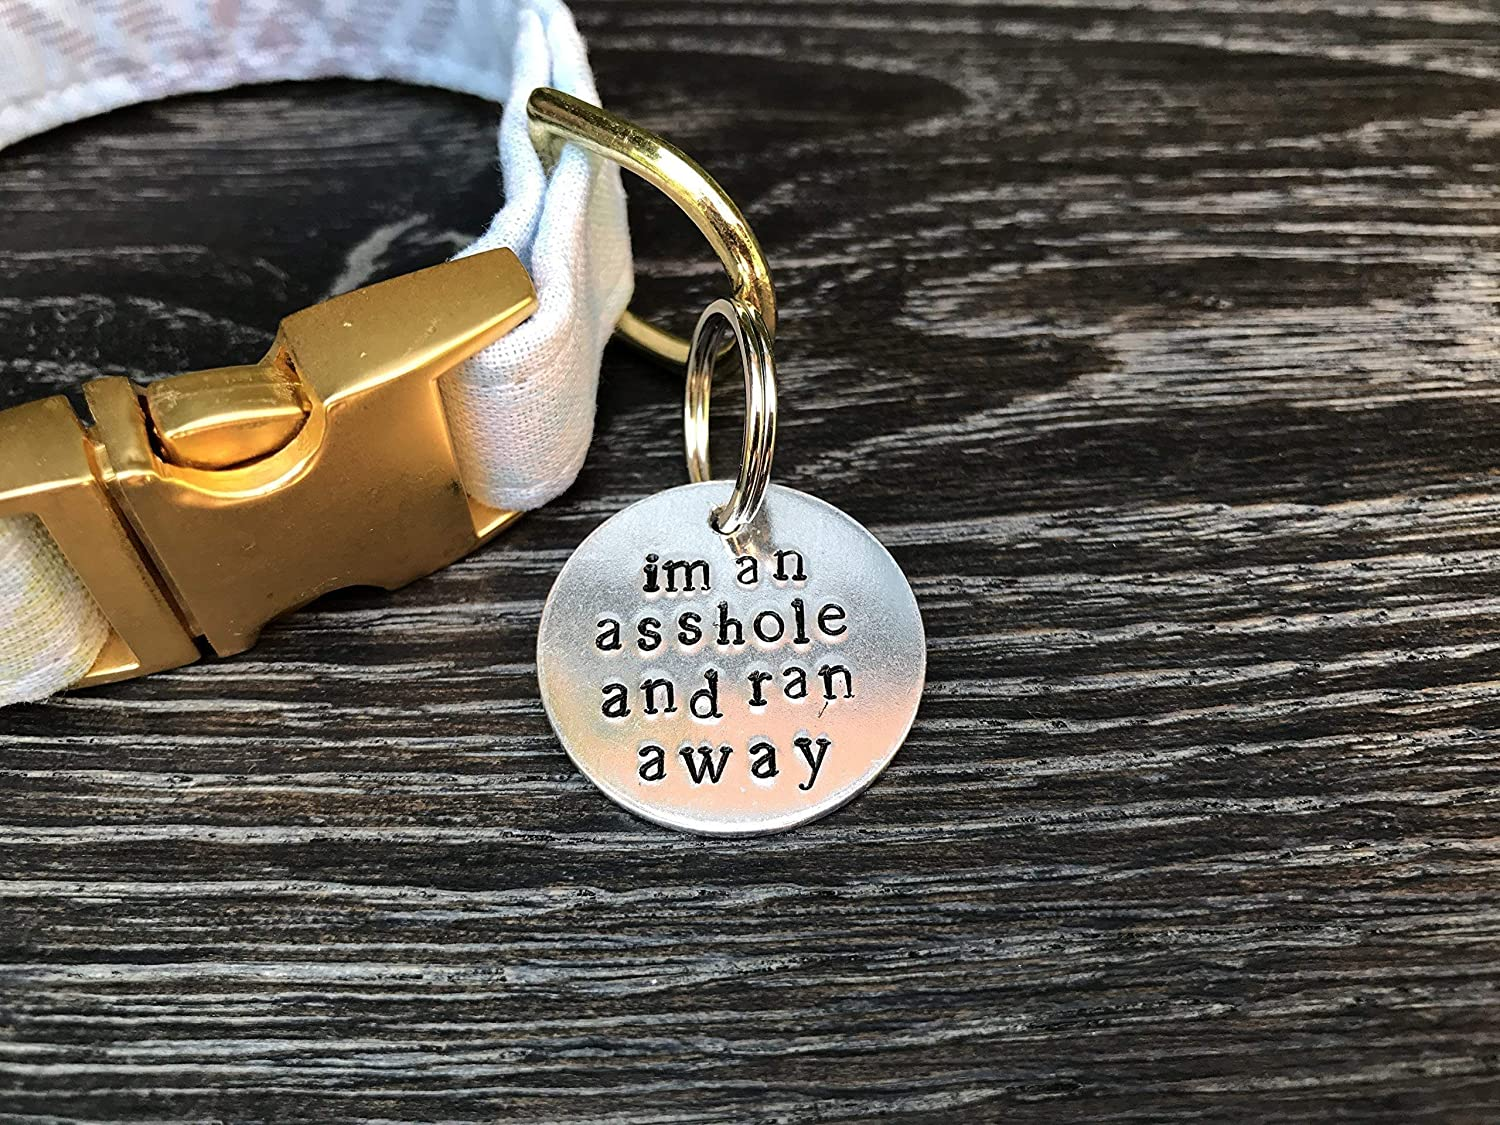 Dog Tag For Dogs - Pet ID Tag - Personalized Dog Tag - Hand Stamped Pet Tag - Pet Accessories - Custom Dog Tag - Unique Dog Tag